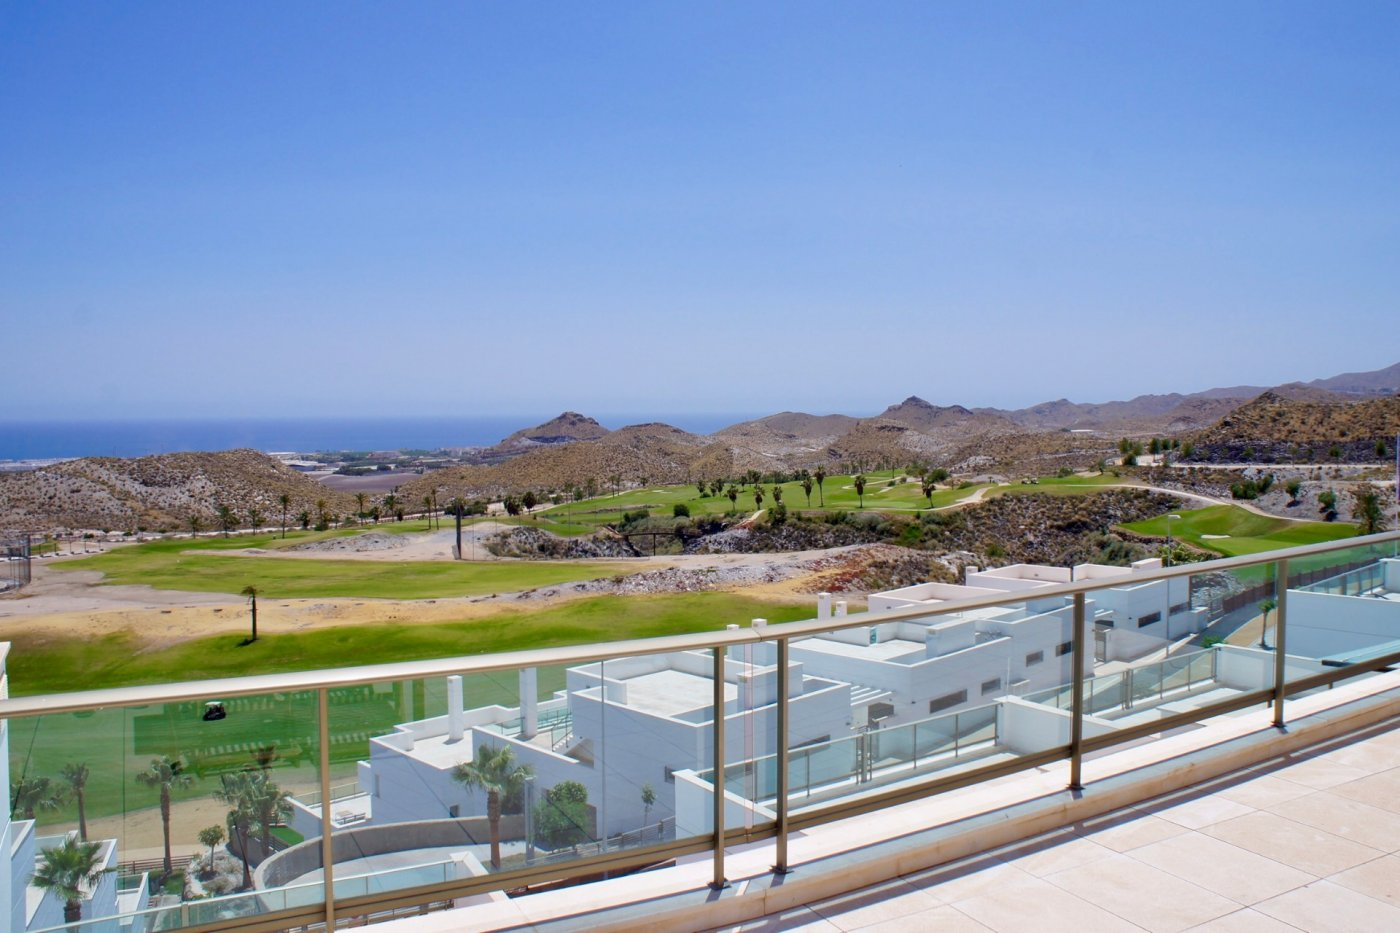 Apartment ref 3109 für sale in Mundo Aguilón Spanien - Quality Homes Costa Cálida